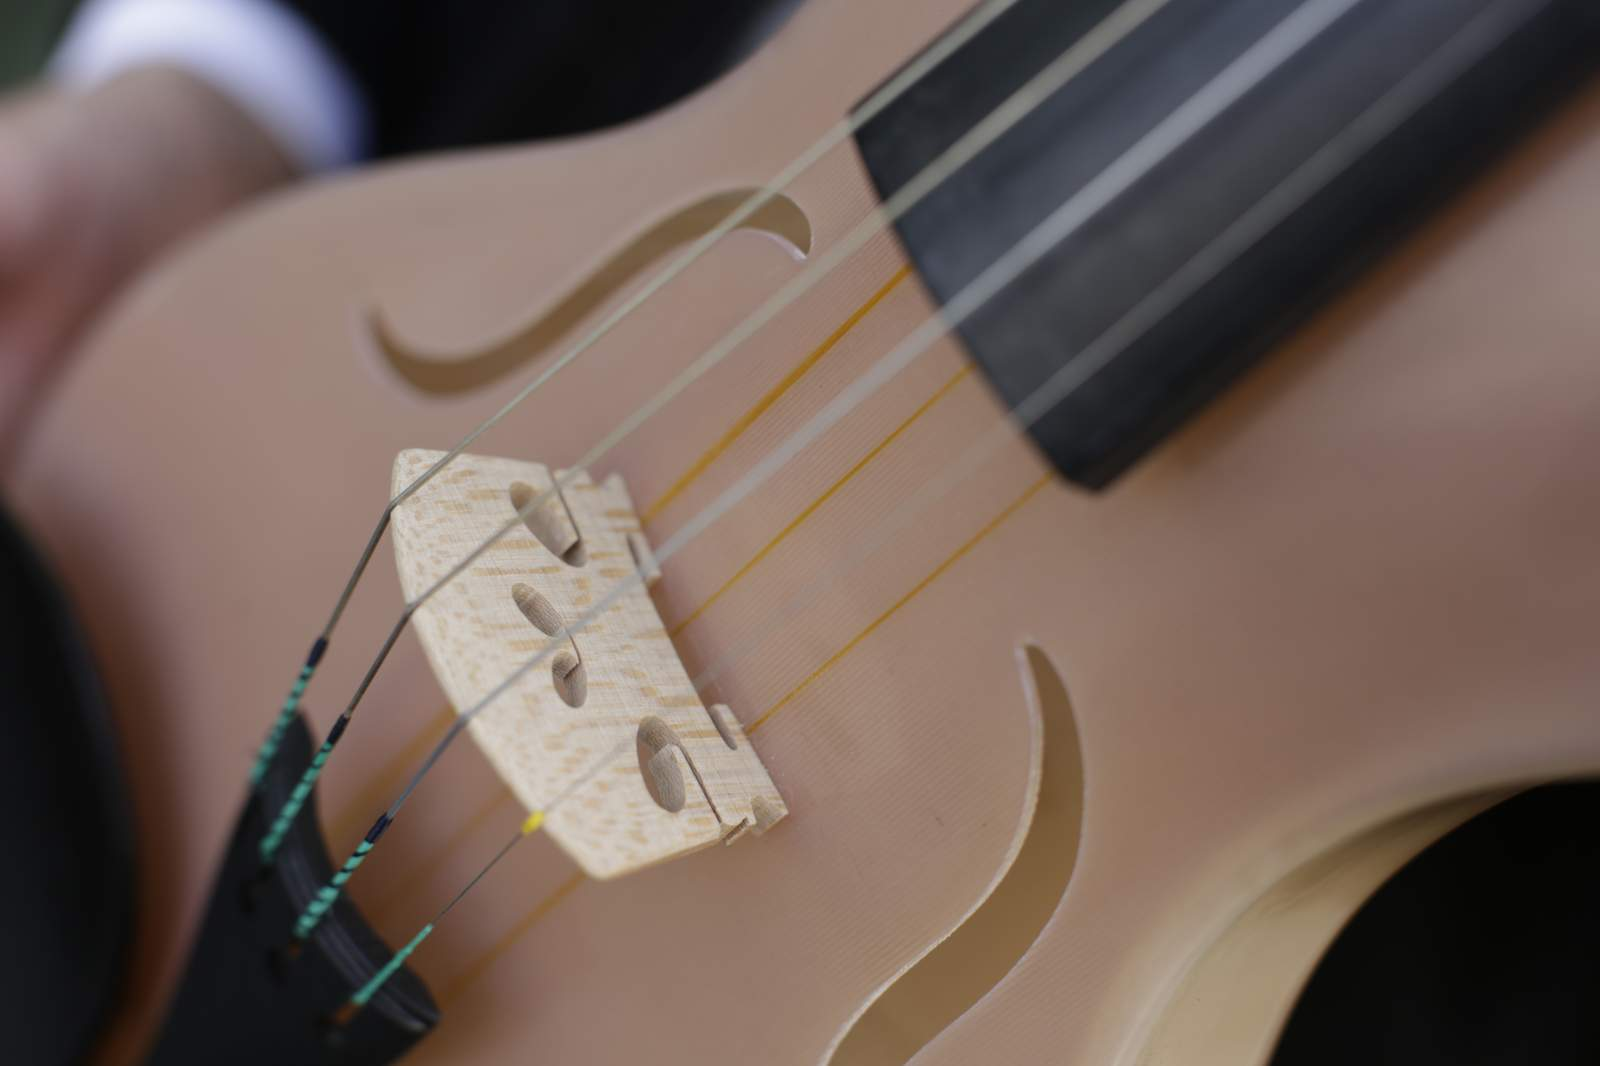 Luca's Violin made from composite material that includes spiders' silk